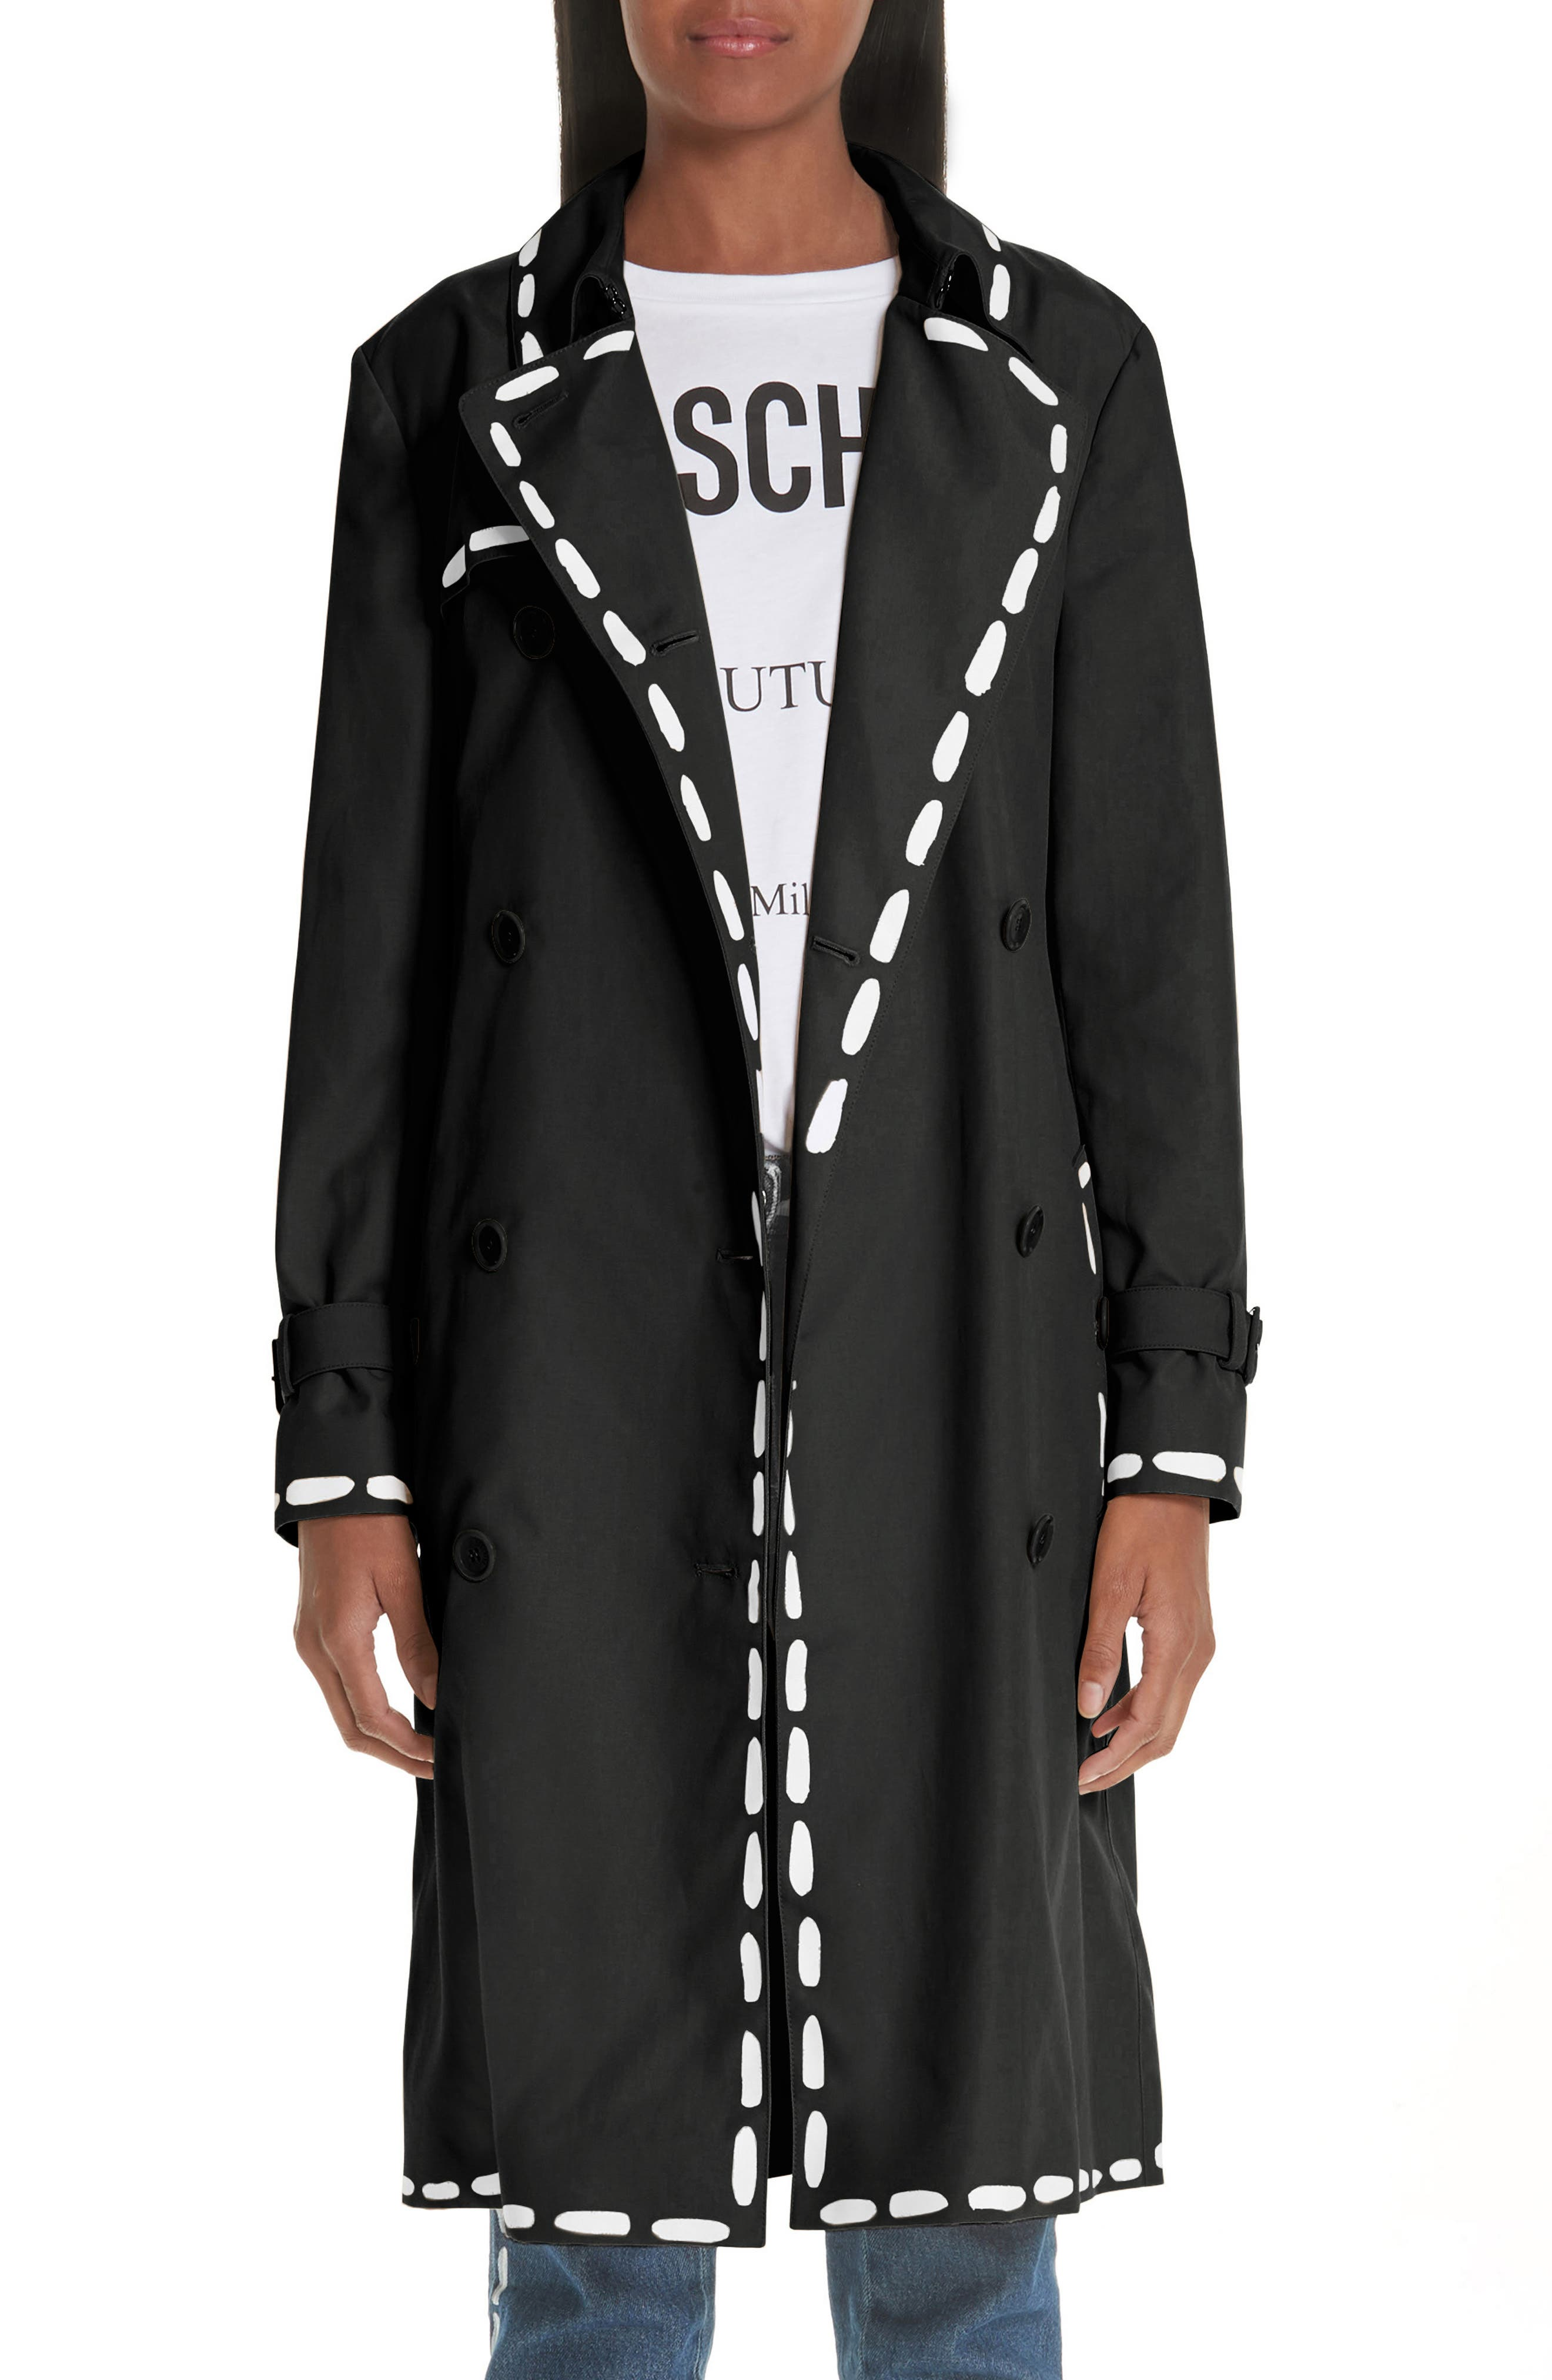 MOSCHINO Dotted Line Trench Coat, Main, color, BLACK